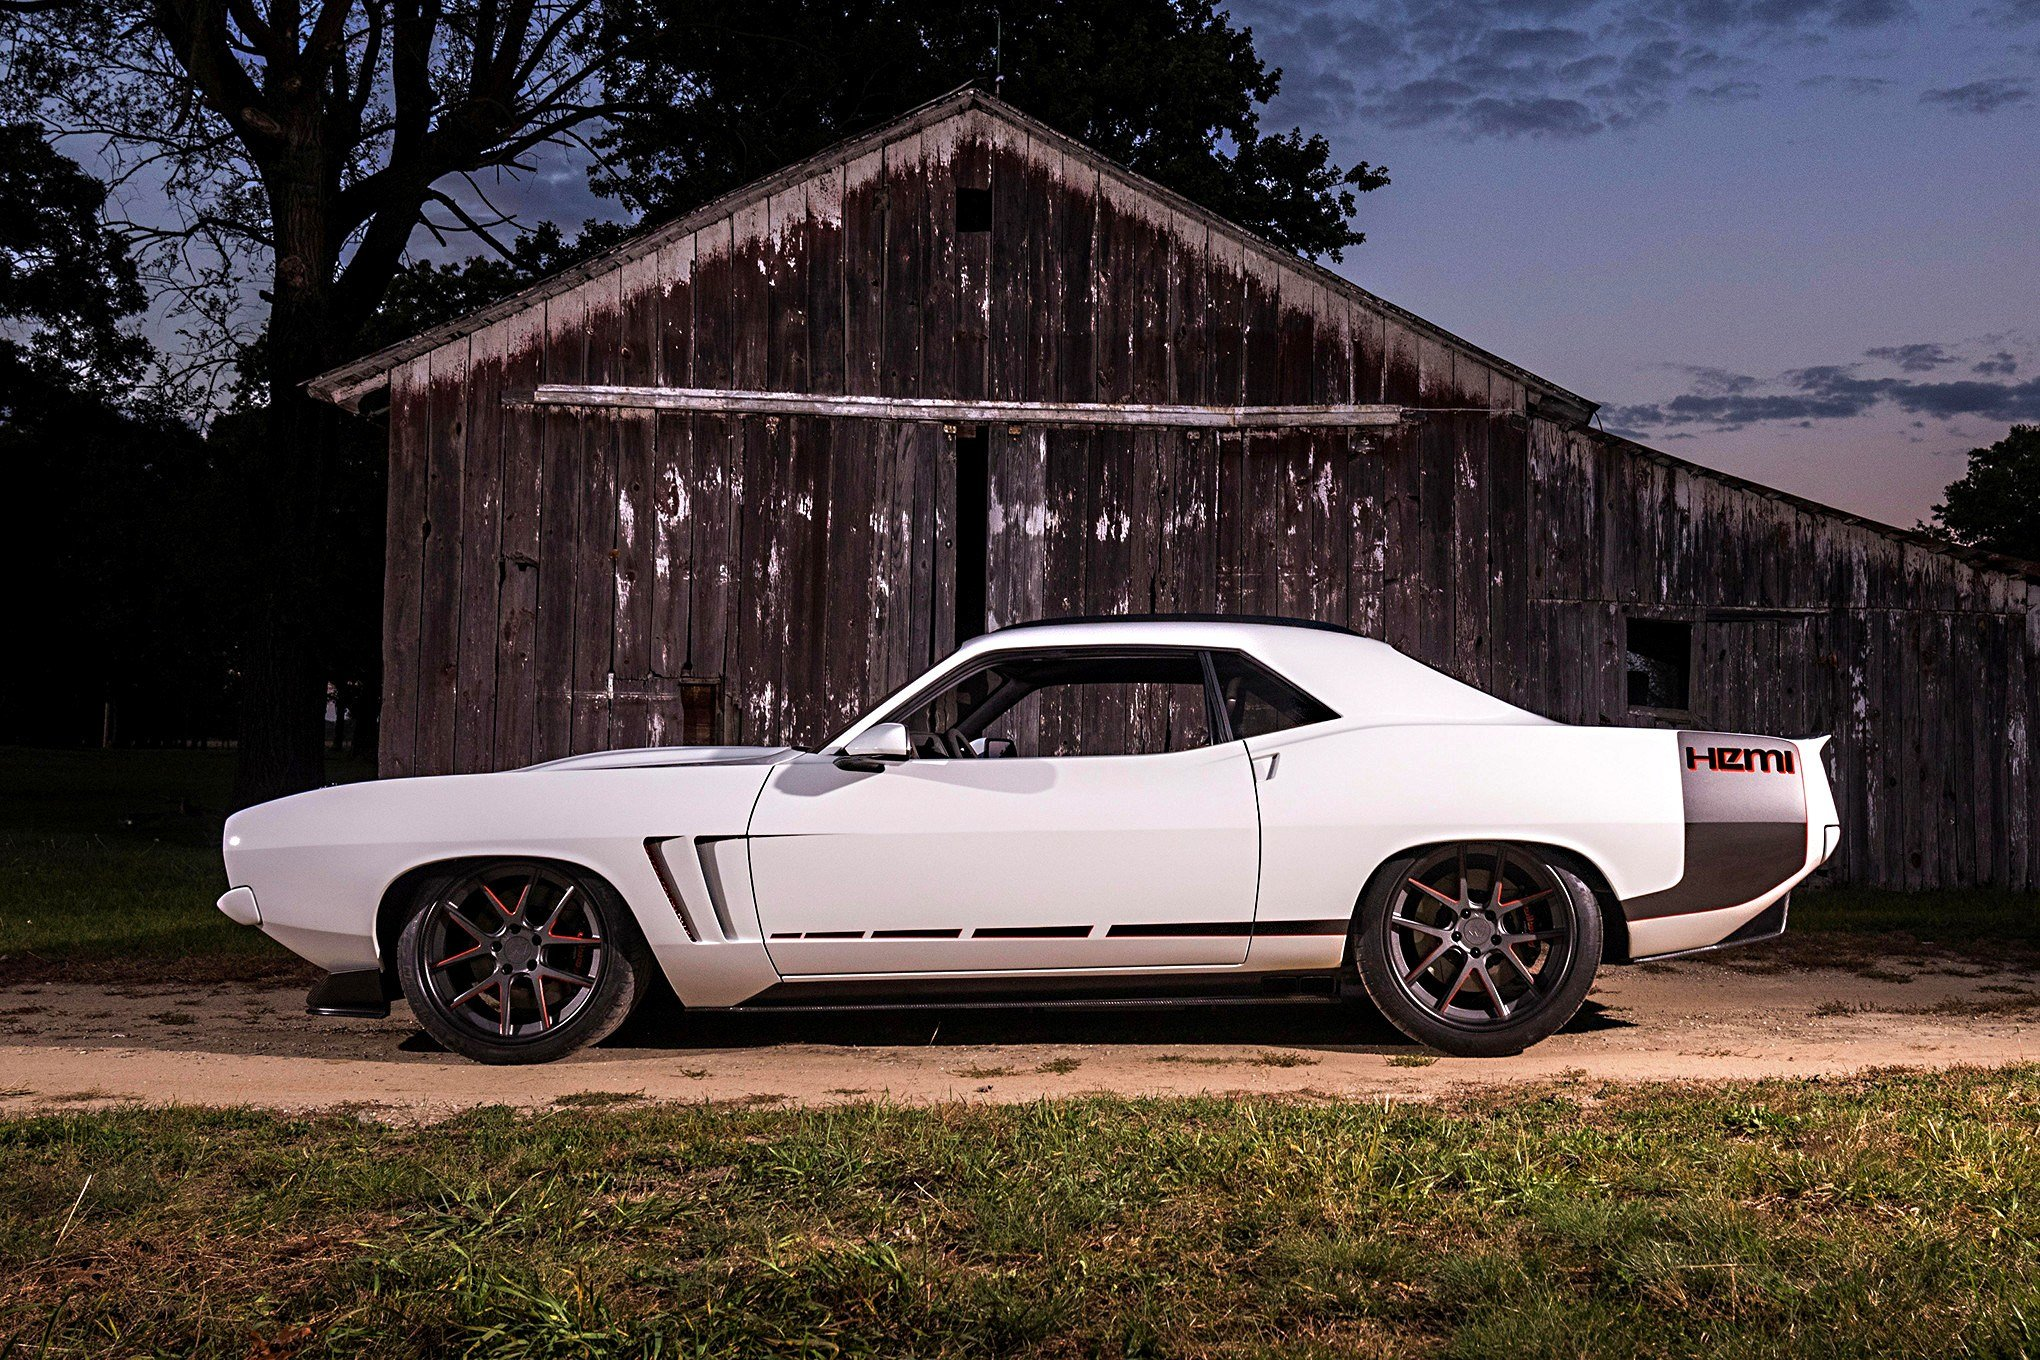 Latest Plymouth Barracuda Hd Wallpaper Background Image Free Download